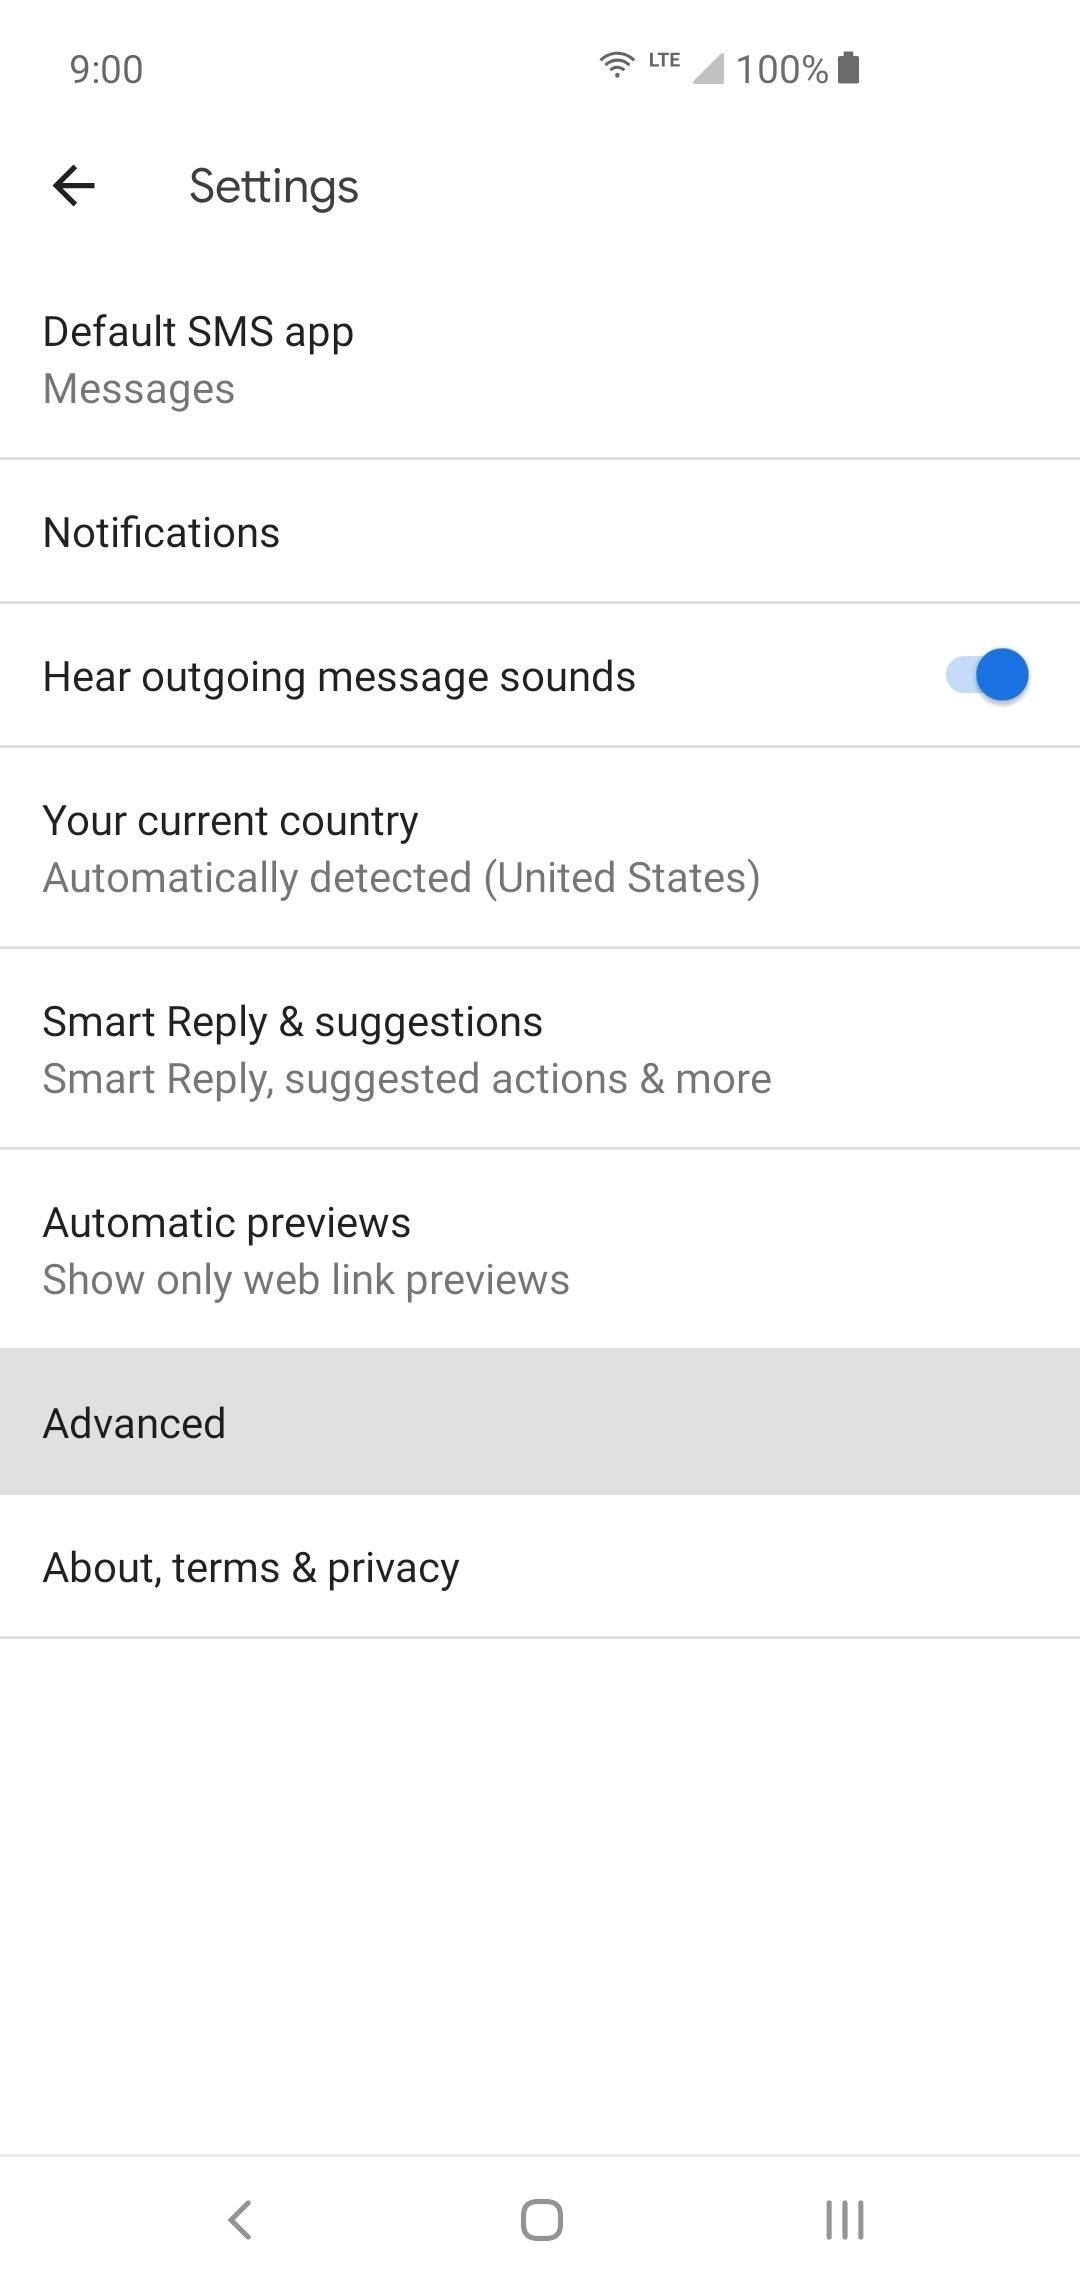 How to Enable RCS in Android Messages for iMessage-Style Texting on Android